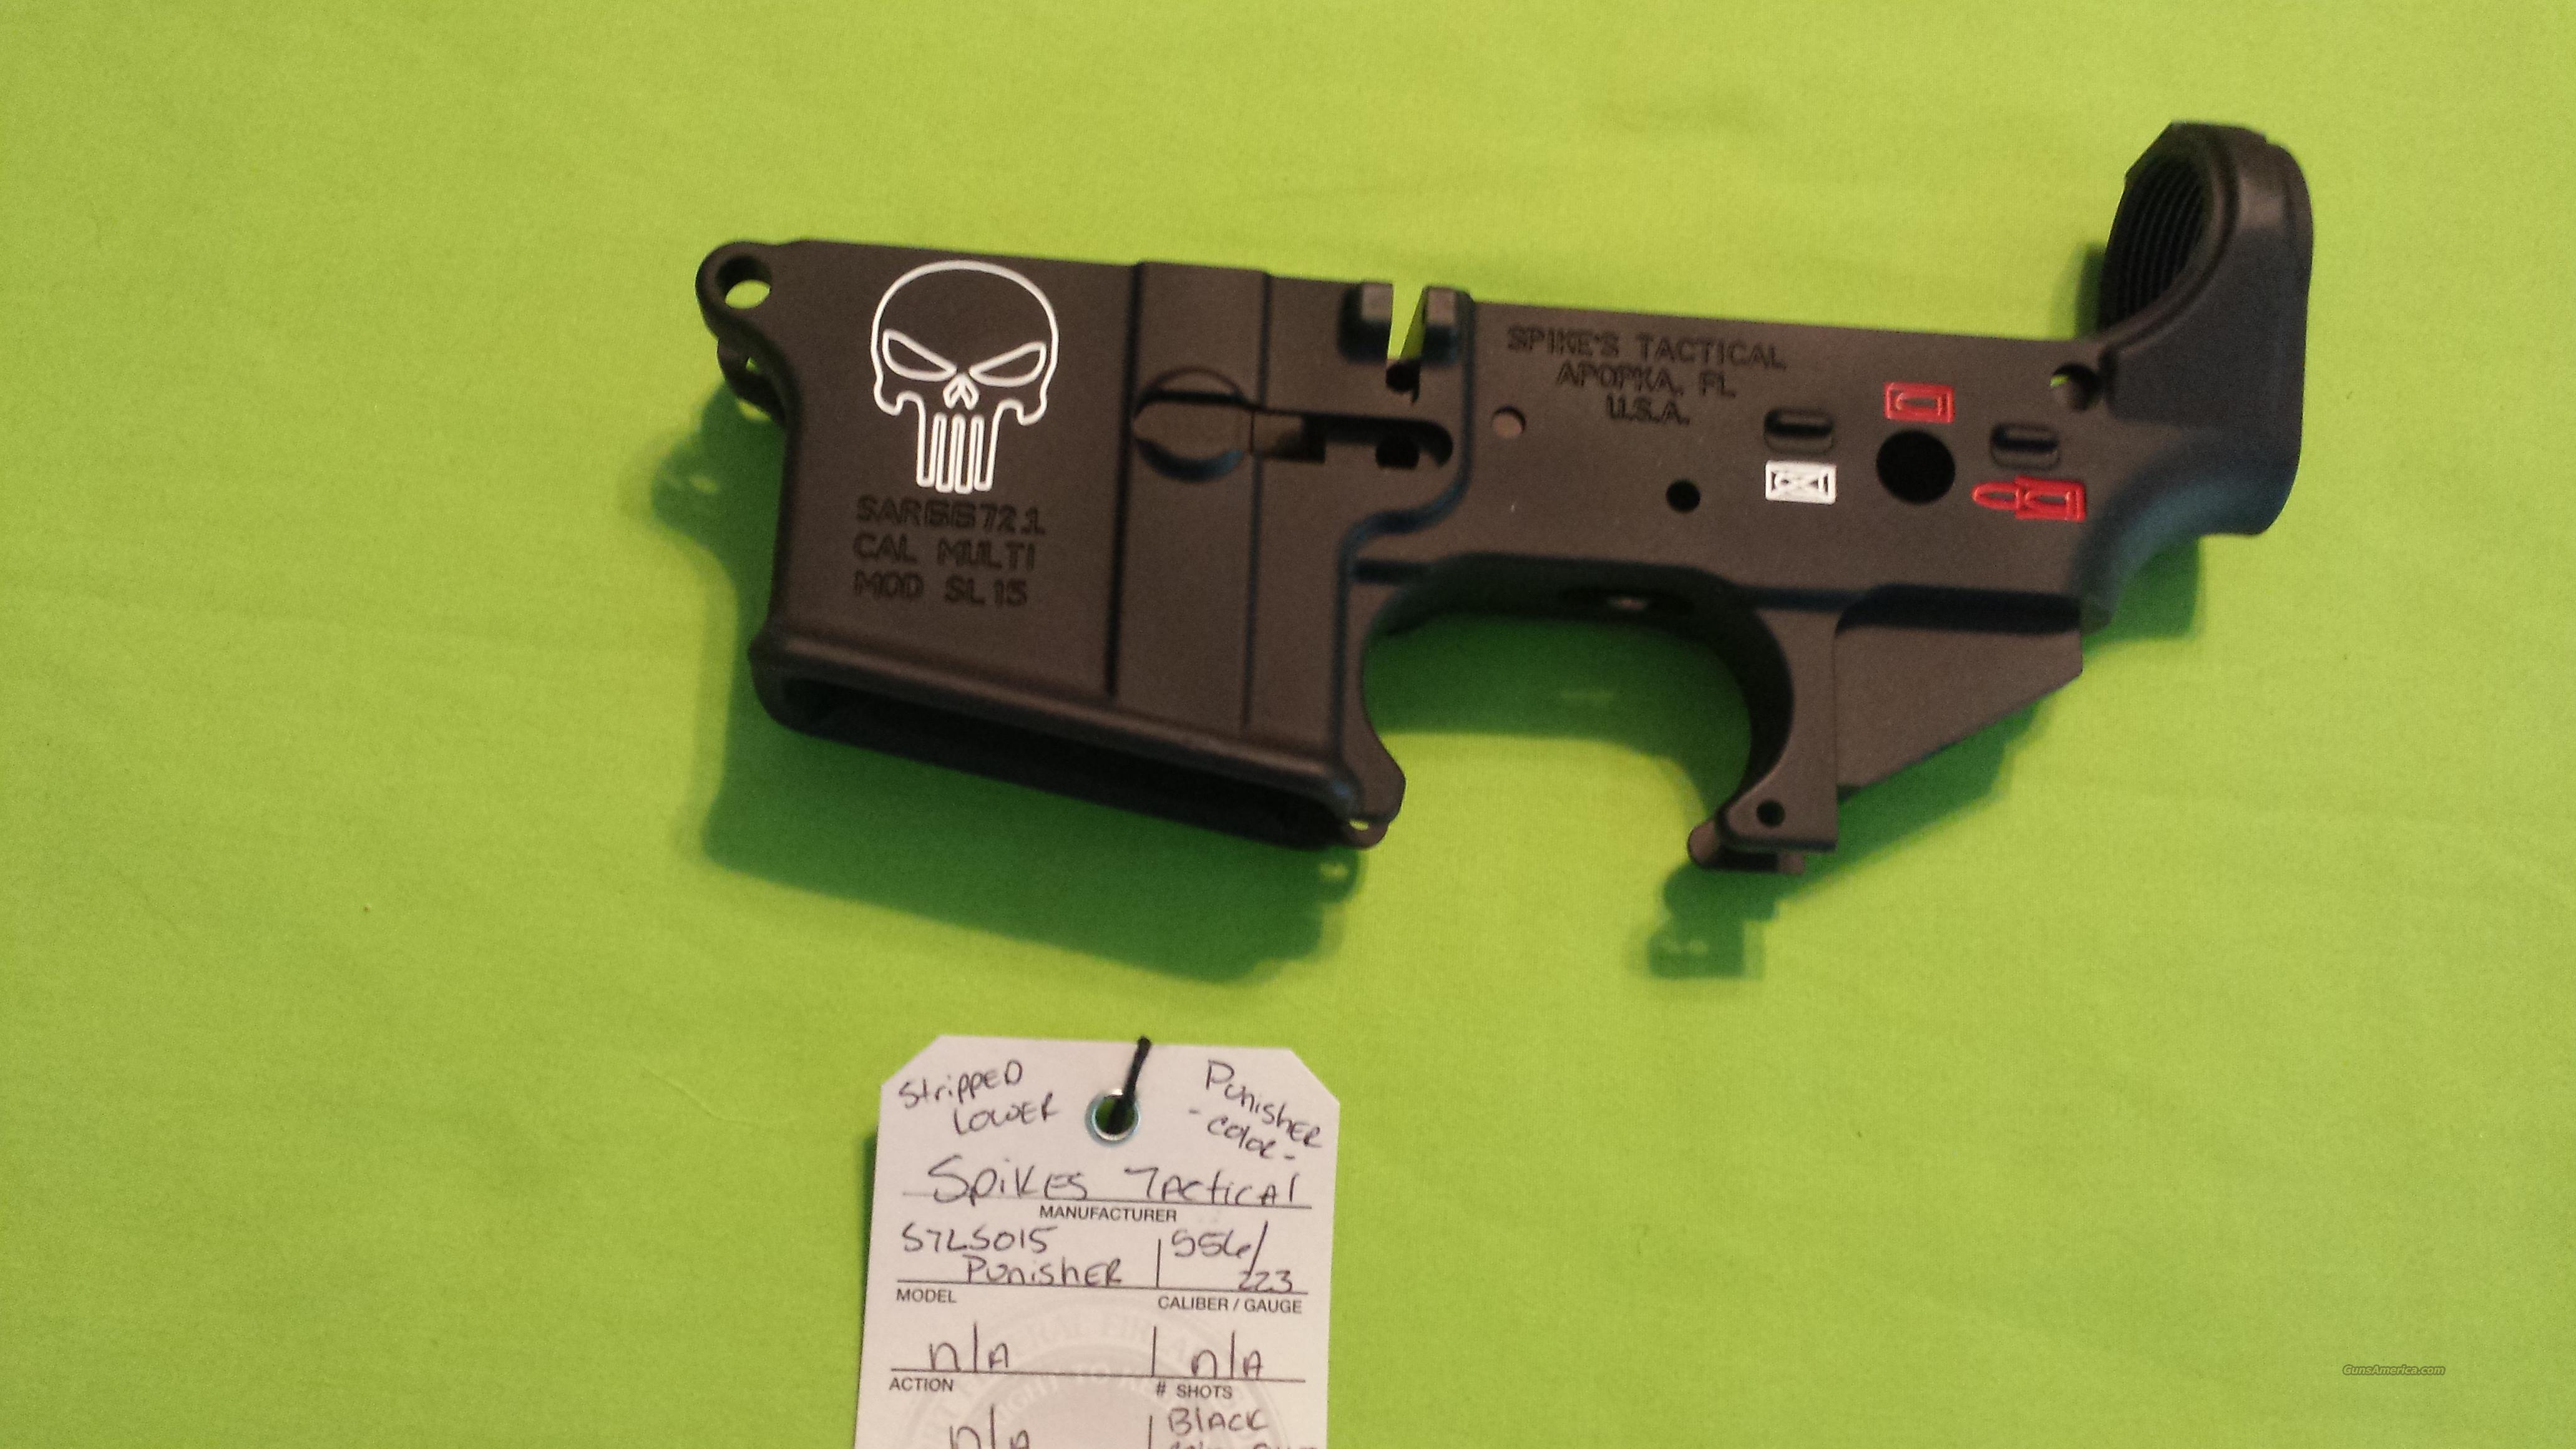 SPIKES STRIPPED LOWER PUNISHER COLOR AR15 5.56 223  Guns > Rifles > AR-15 Rifles - Small Manufacturers > Lower Only